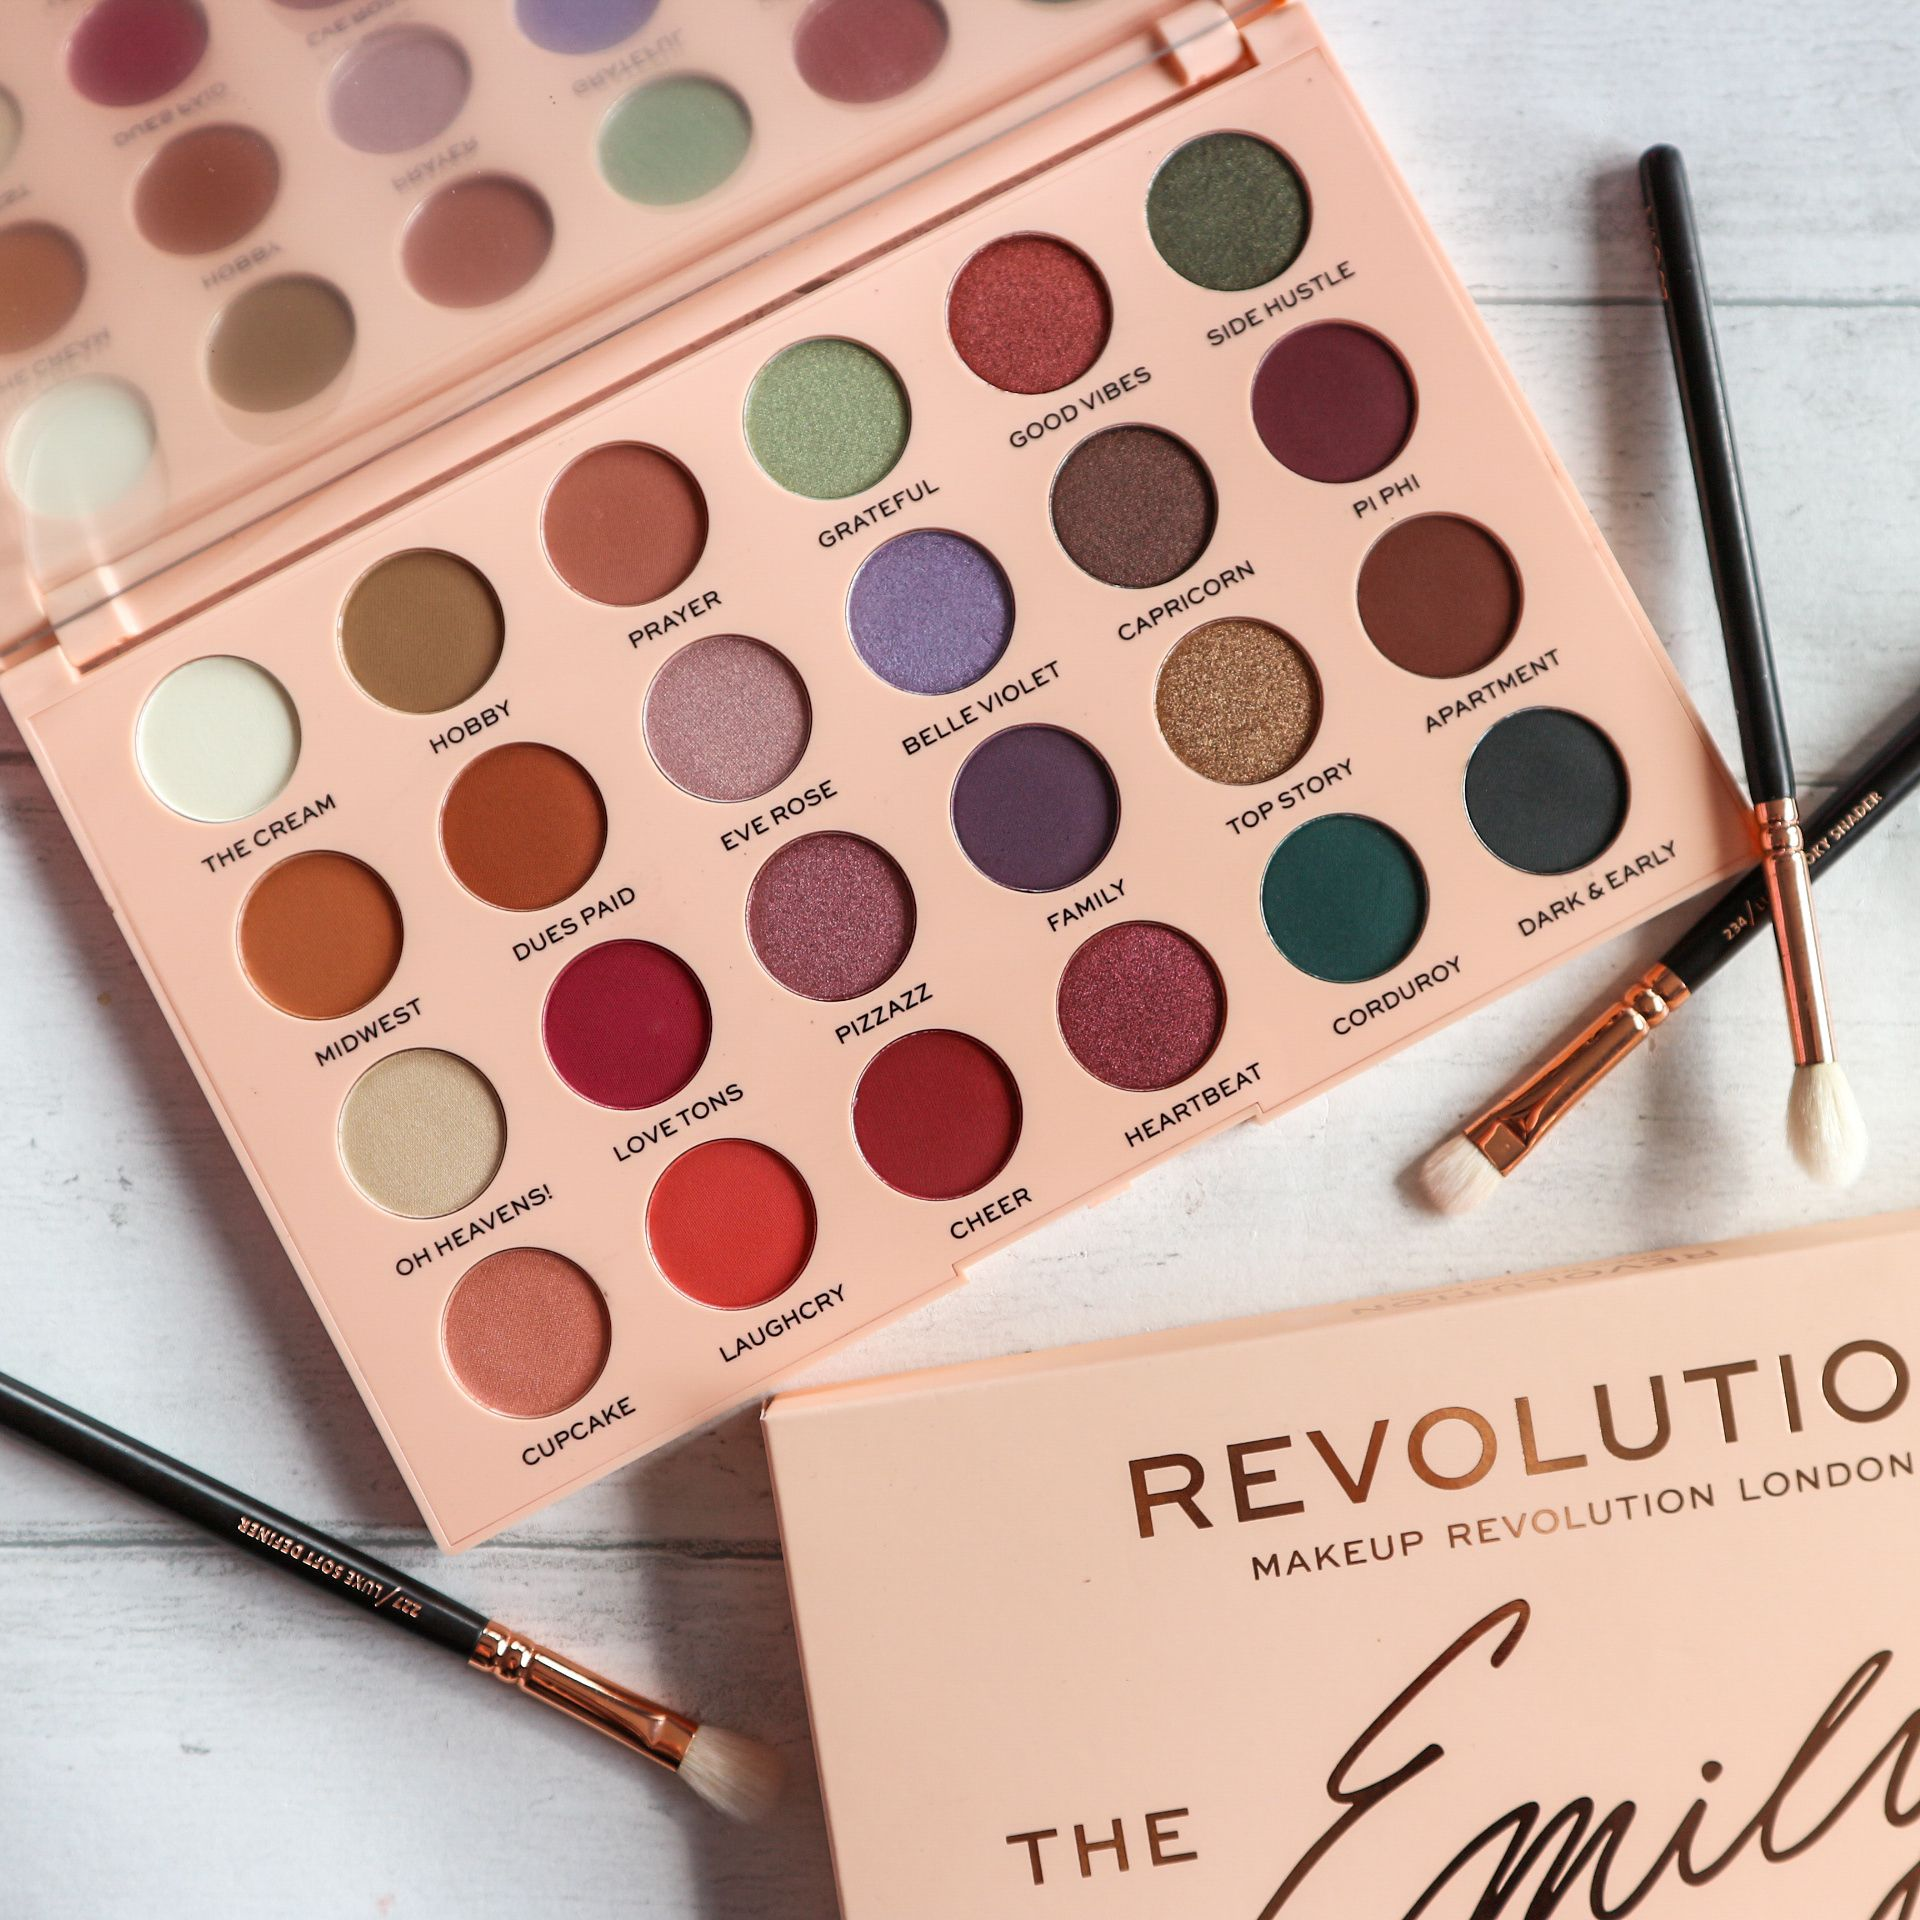 Review and Swatches of the Makeup Revolution x